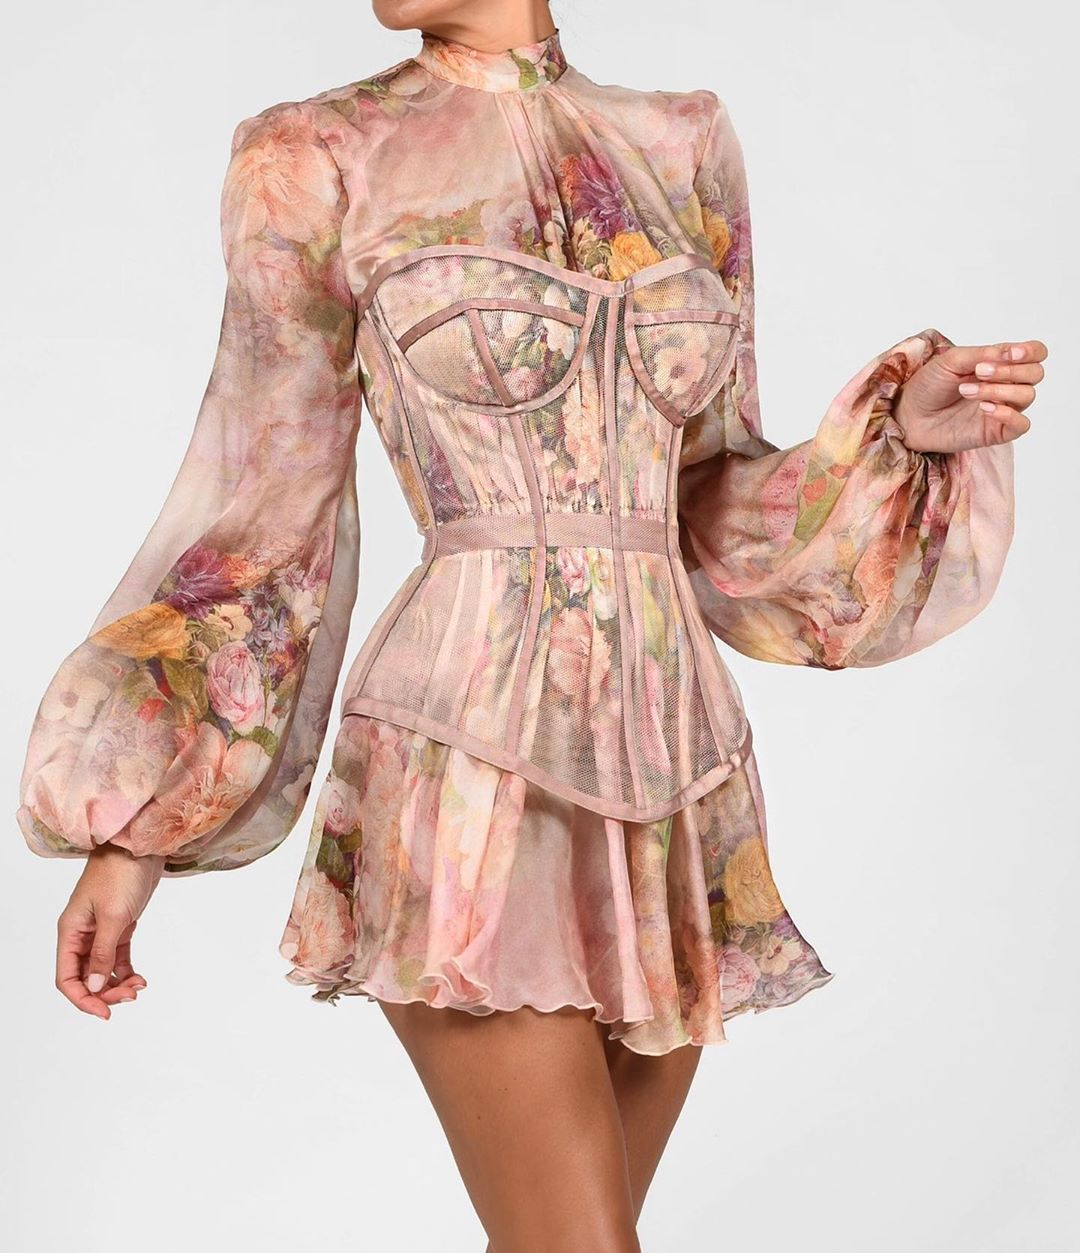 The Dolls House Fashion On Instagram Our Rose Silk Fabric Has Arrived Order Now With 25 Off Everythi Mini Dress Mini Dress With Sleeves Long Sleeve Dress [ 1253 x 1080 Pixel ]